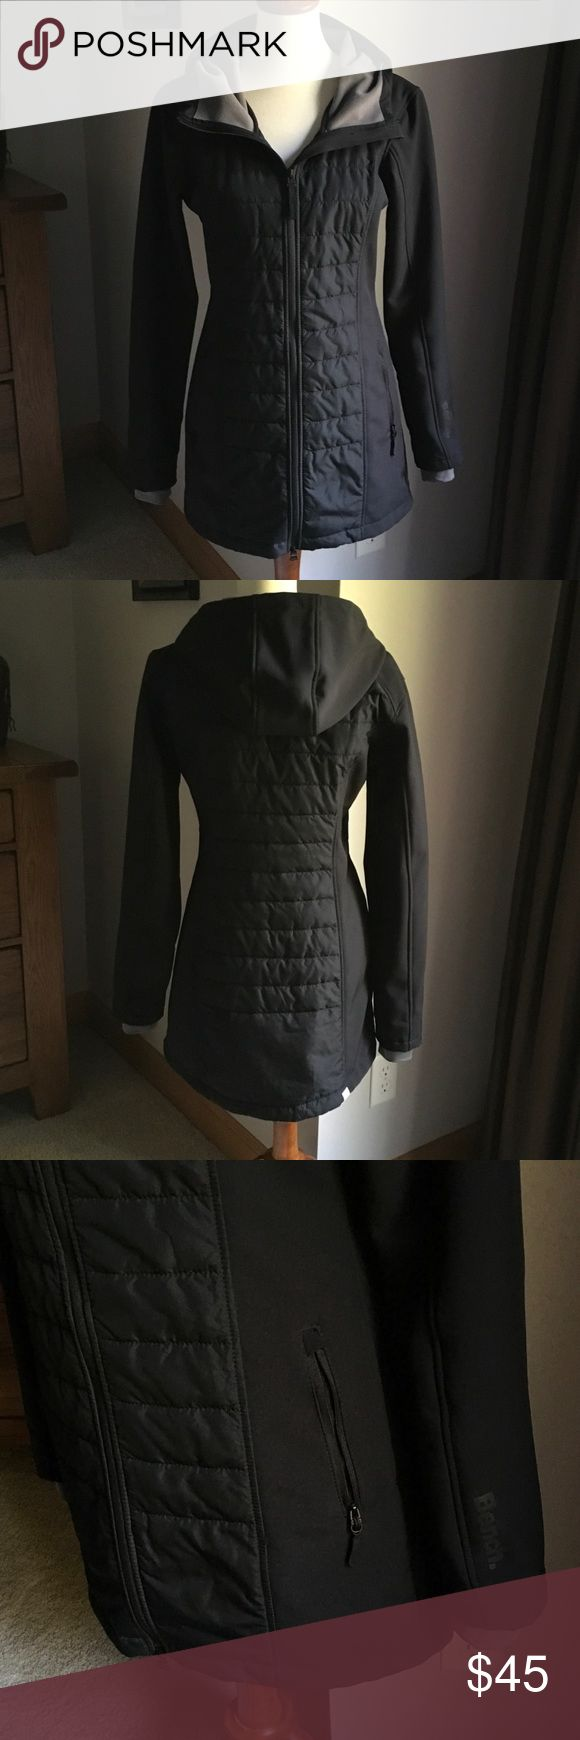 Bench coat. Warm Bench trench coat. Cuffs have thumb hole for extra protection from the cold. Hood and full zip with 2 zip side pockets. Worn a couple times. Excellent condition 🌺 Bench Jackets & Coats Trench Coats